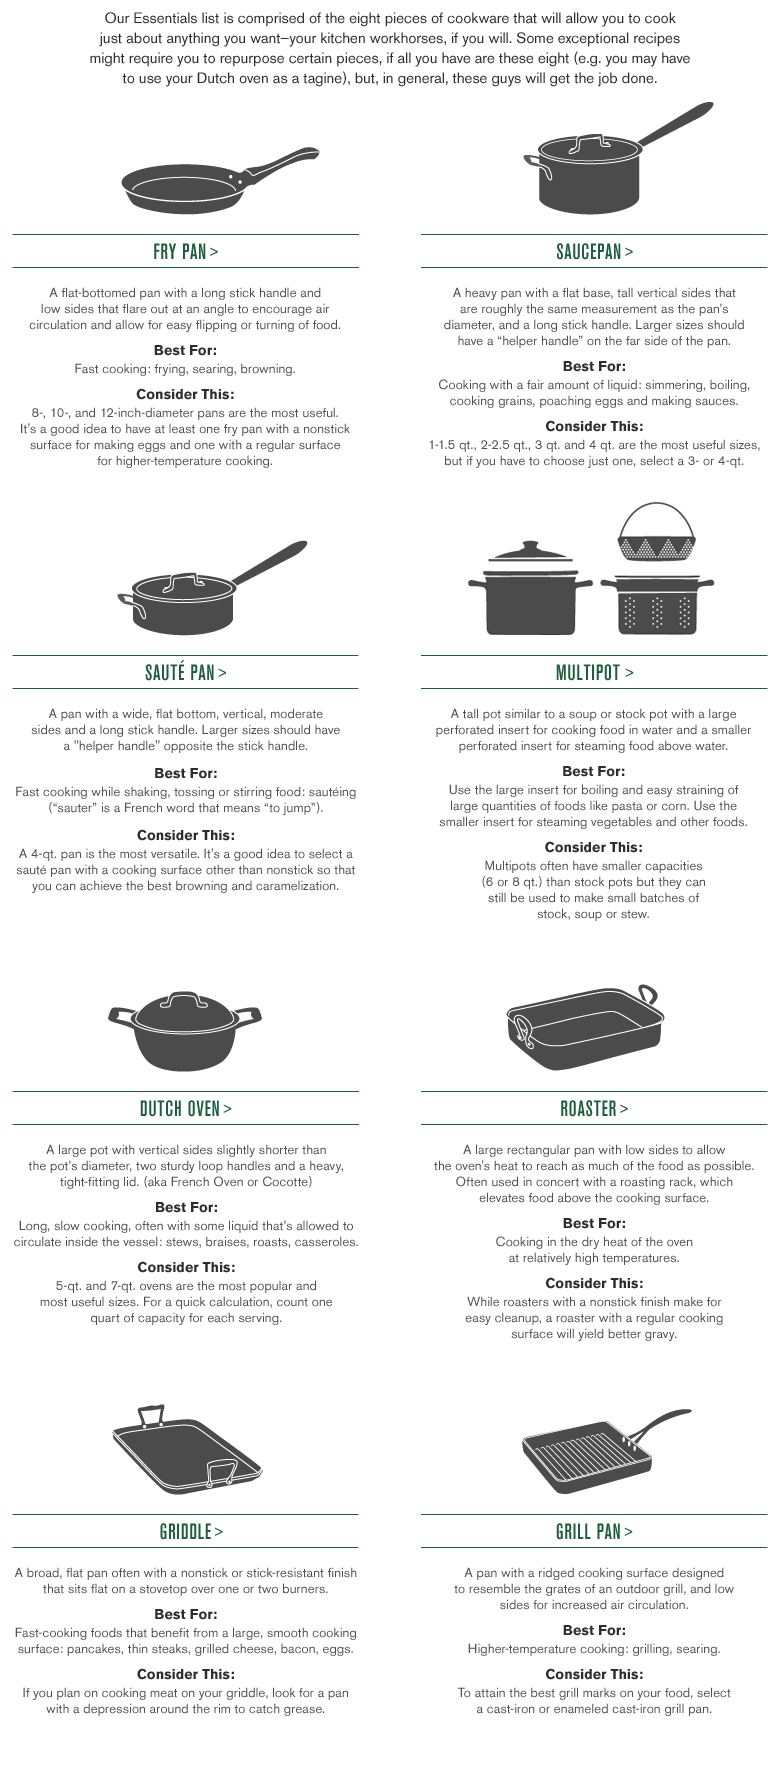 Cookware Types, Guide to Cookware & Cookware Uses | Williams-Sonoma ...